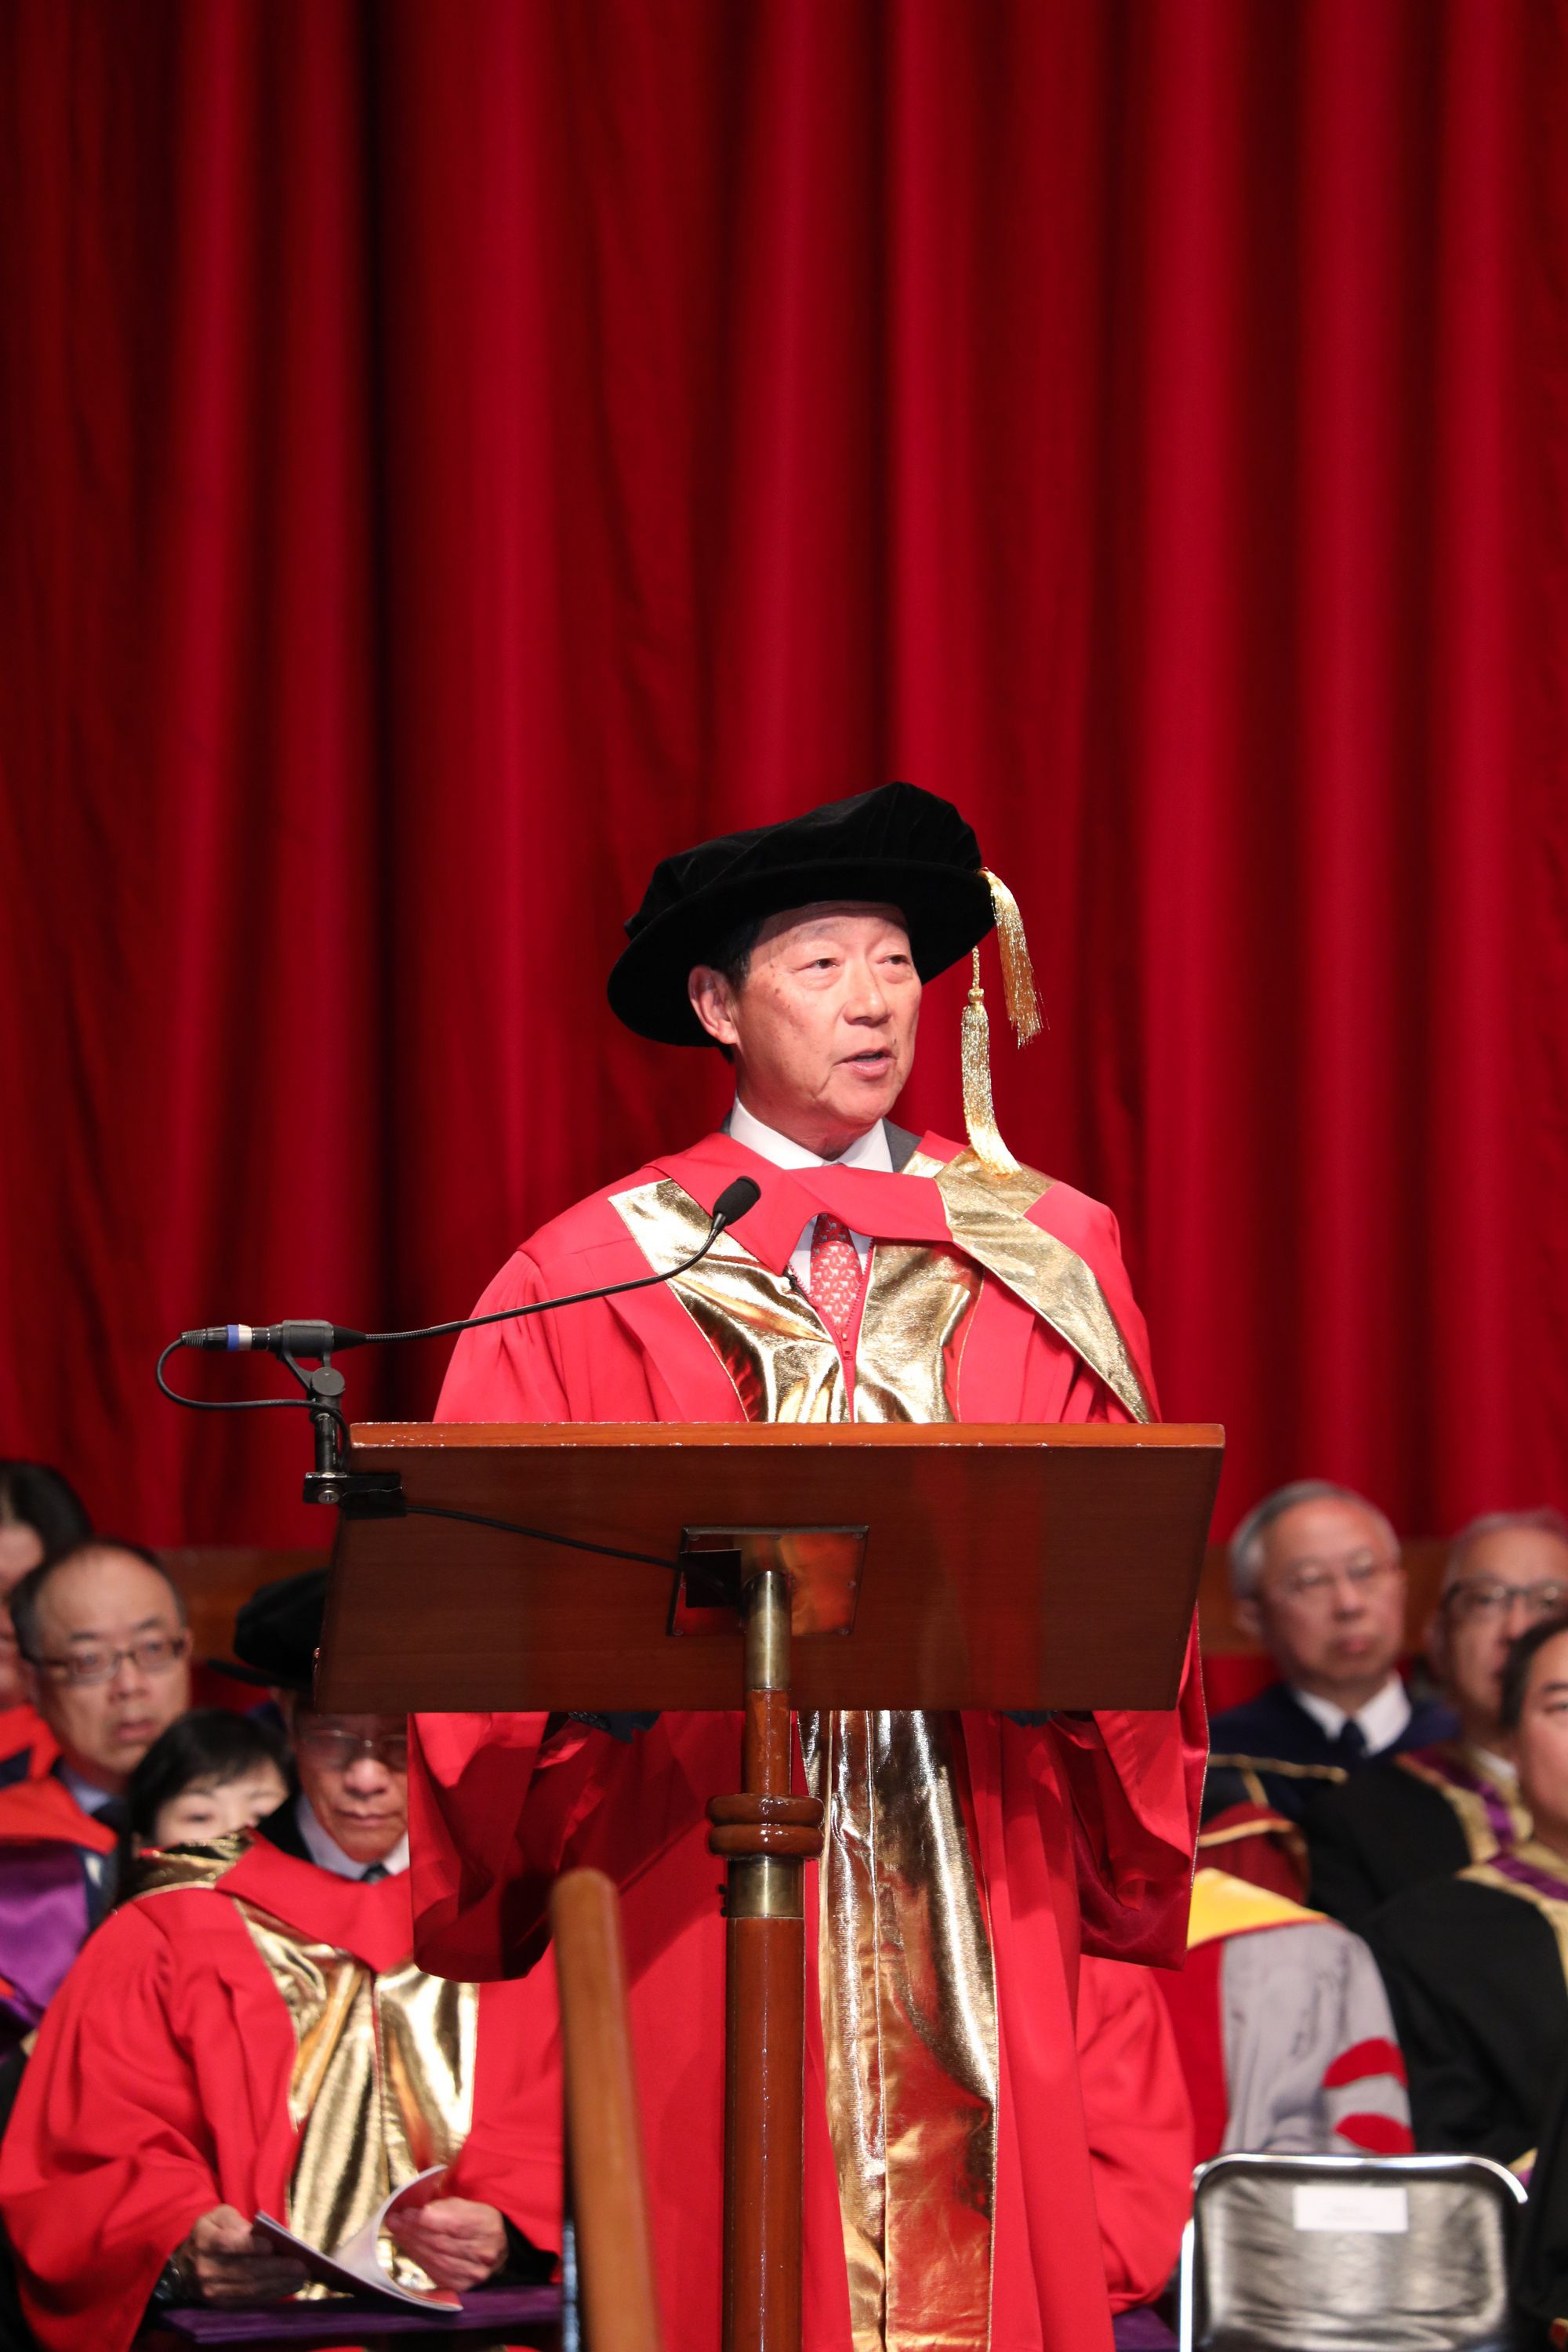 Dr. Ip Sik-on Simon delivers a speech